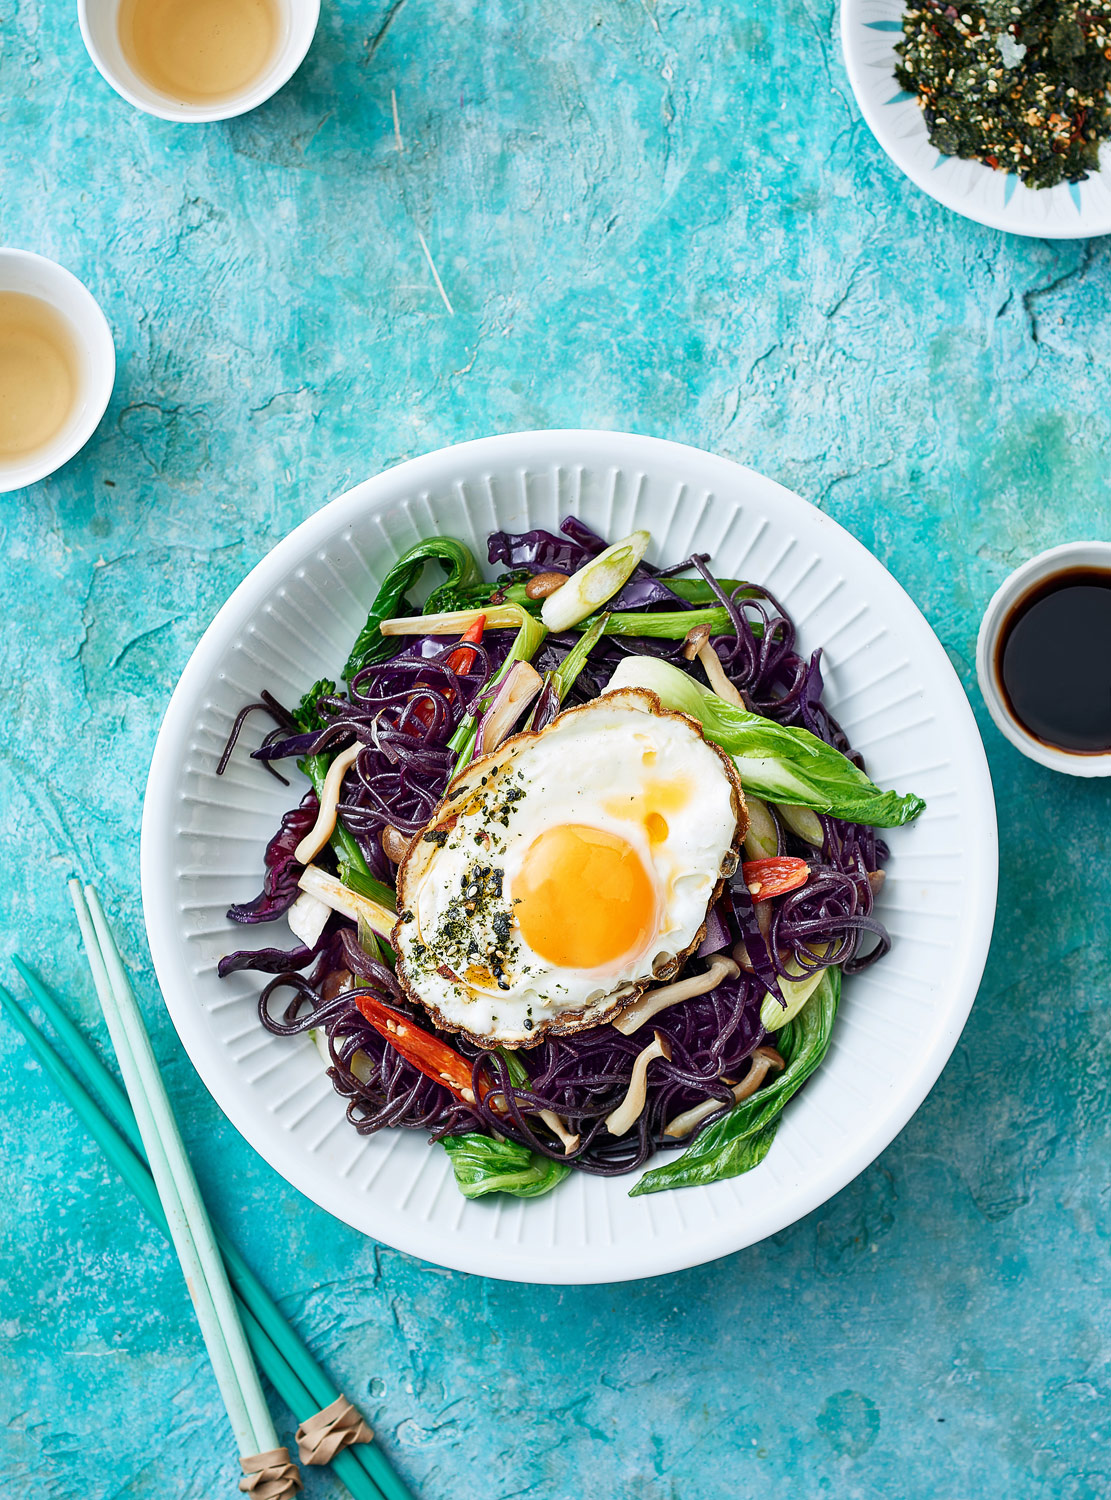 Asian Stir-Fry with black noodles and crispy nori